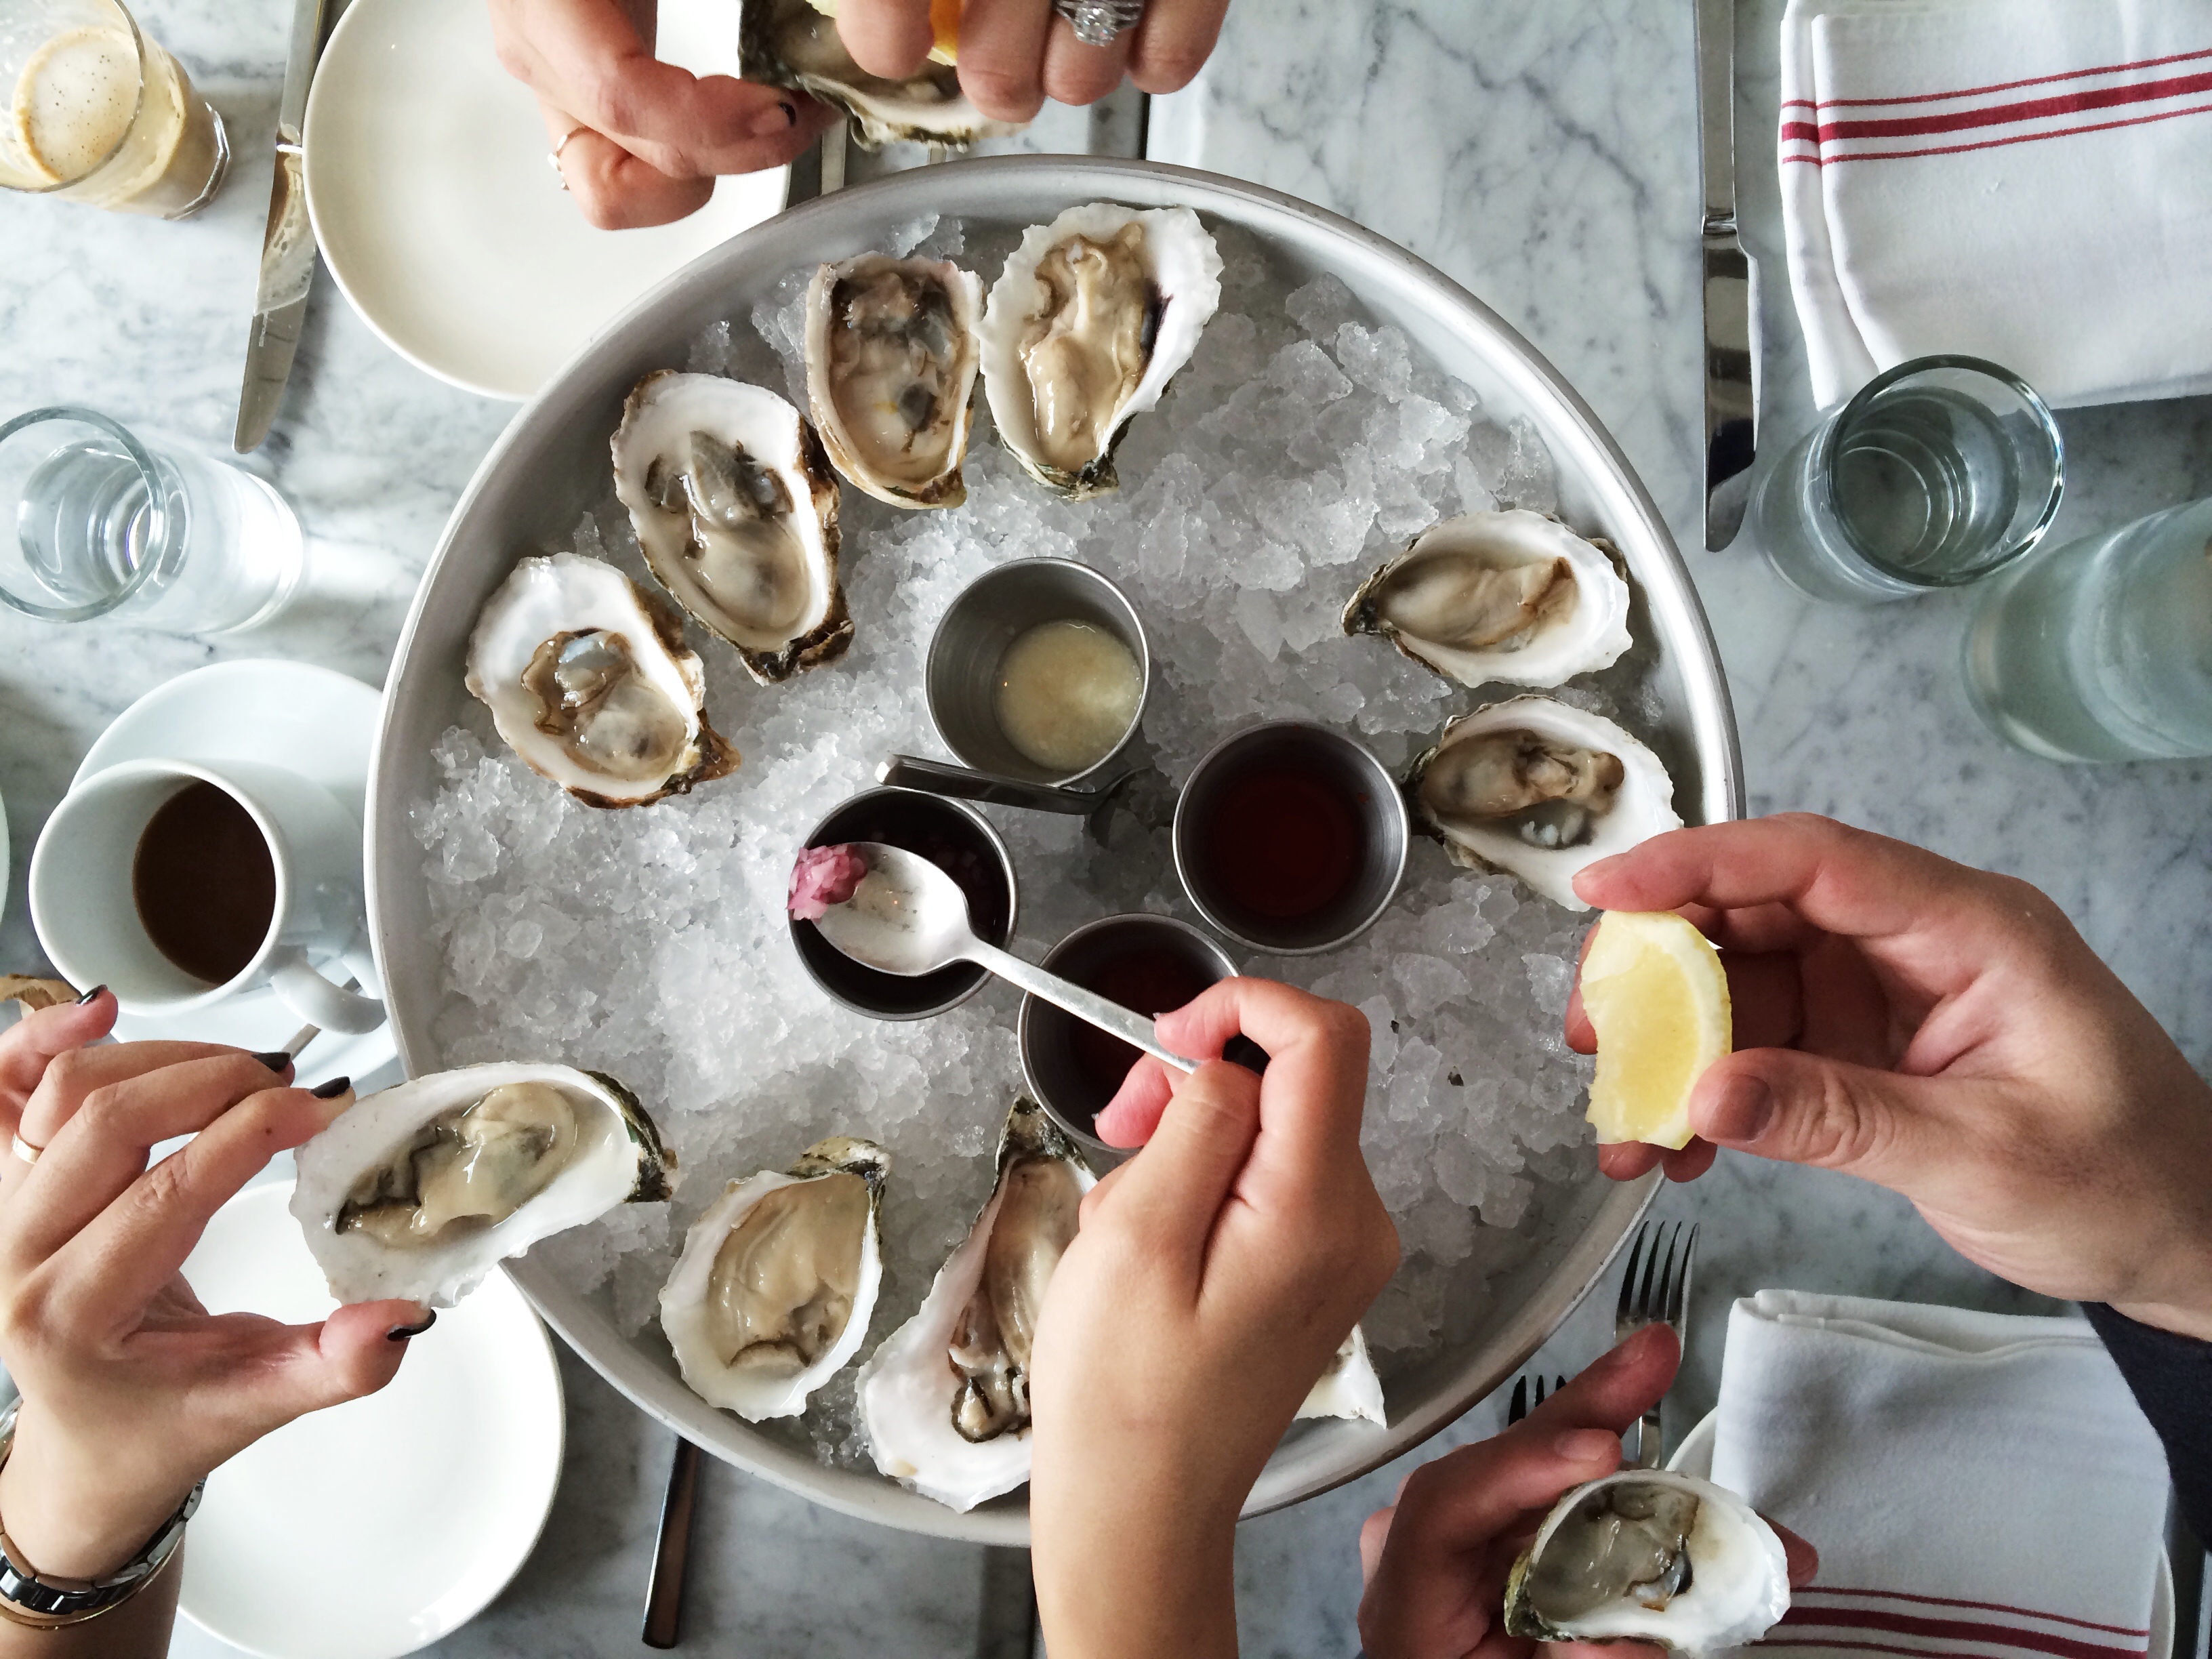 Dangerous bacteria in oysters and raw fish has killed 13 for Raw fish food poisoning